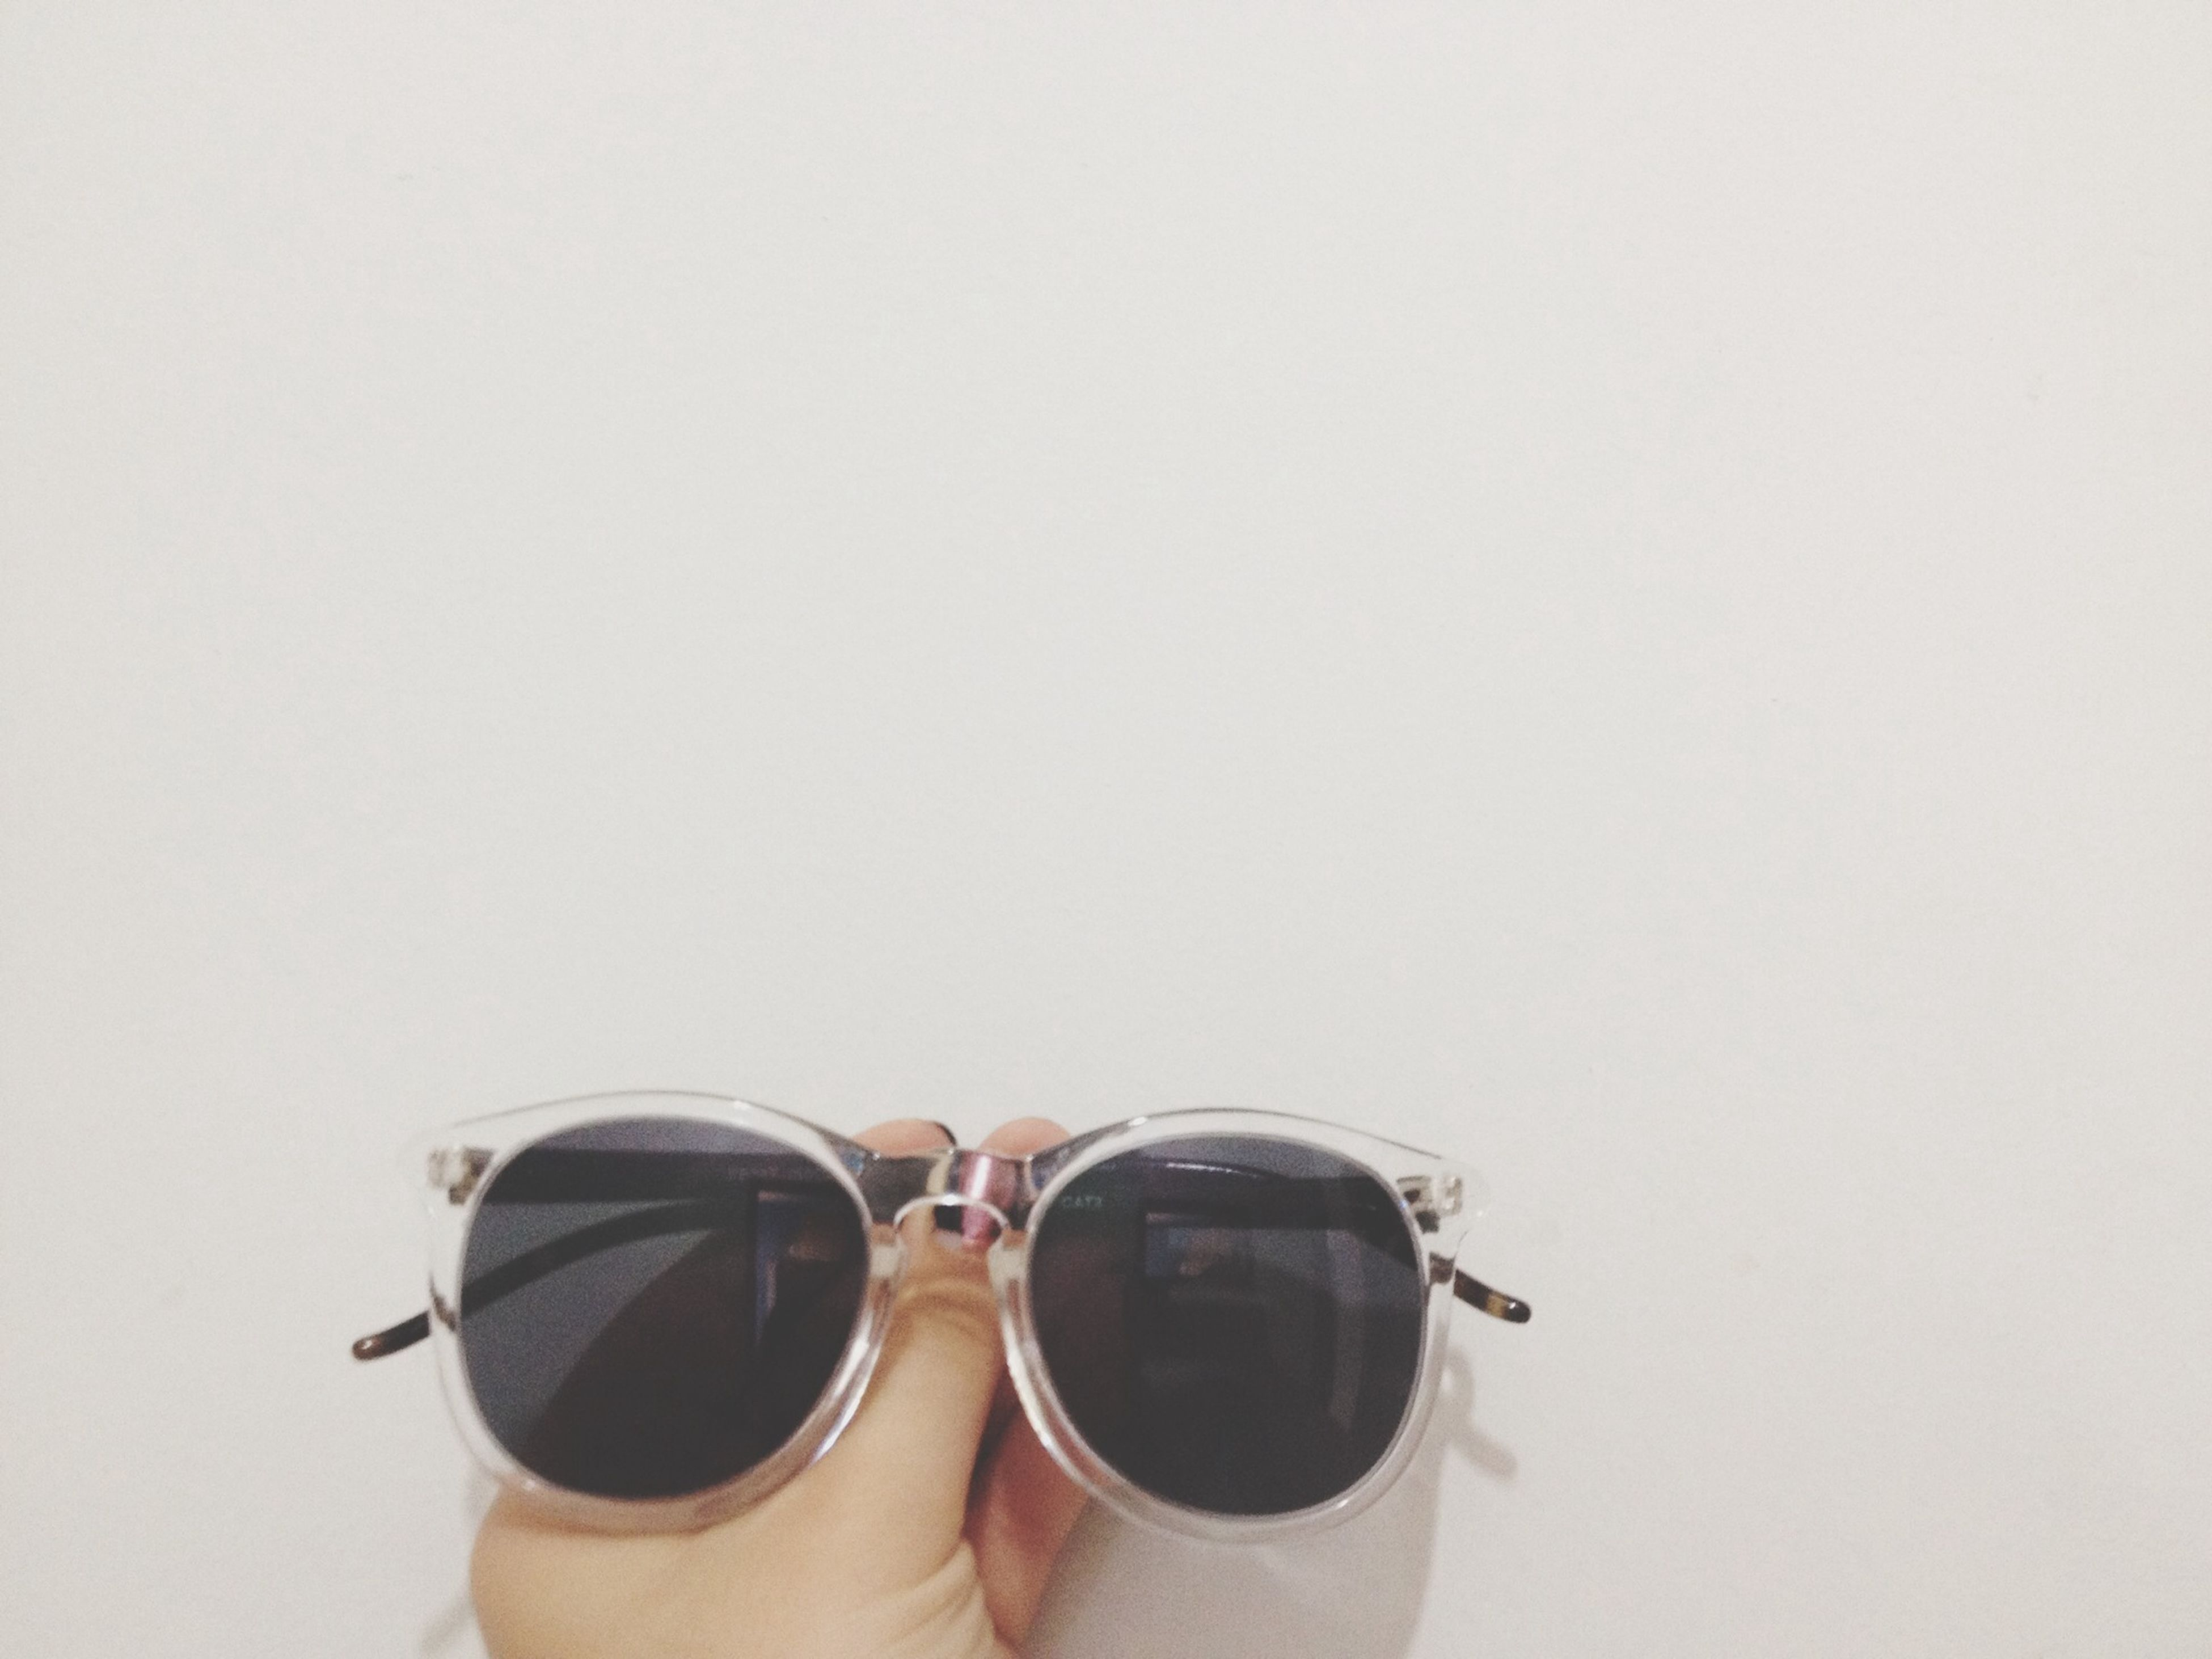 copy space, white background, studio shot, person, part of, lifestyles, personal perspective, holding, close-up, leisure activity, photography themes, unrecognizable person, cropped, clear sky, sunglasses, men, technology